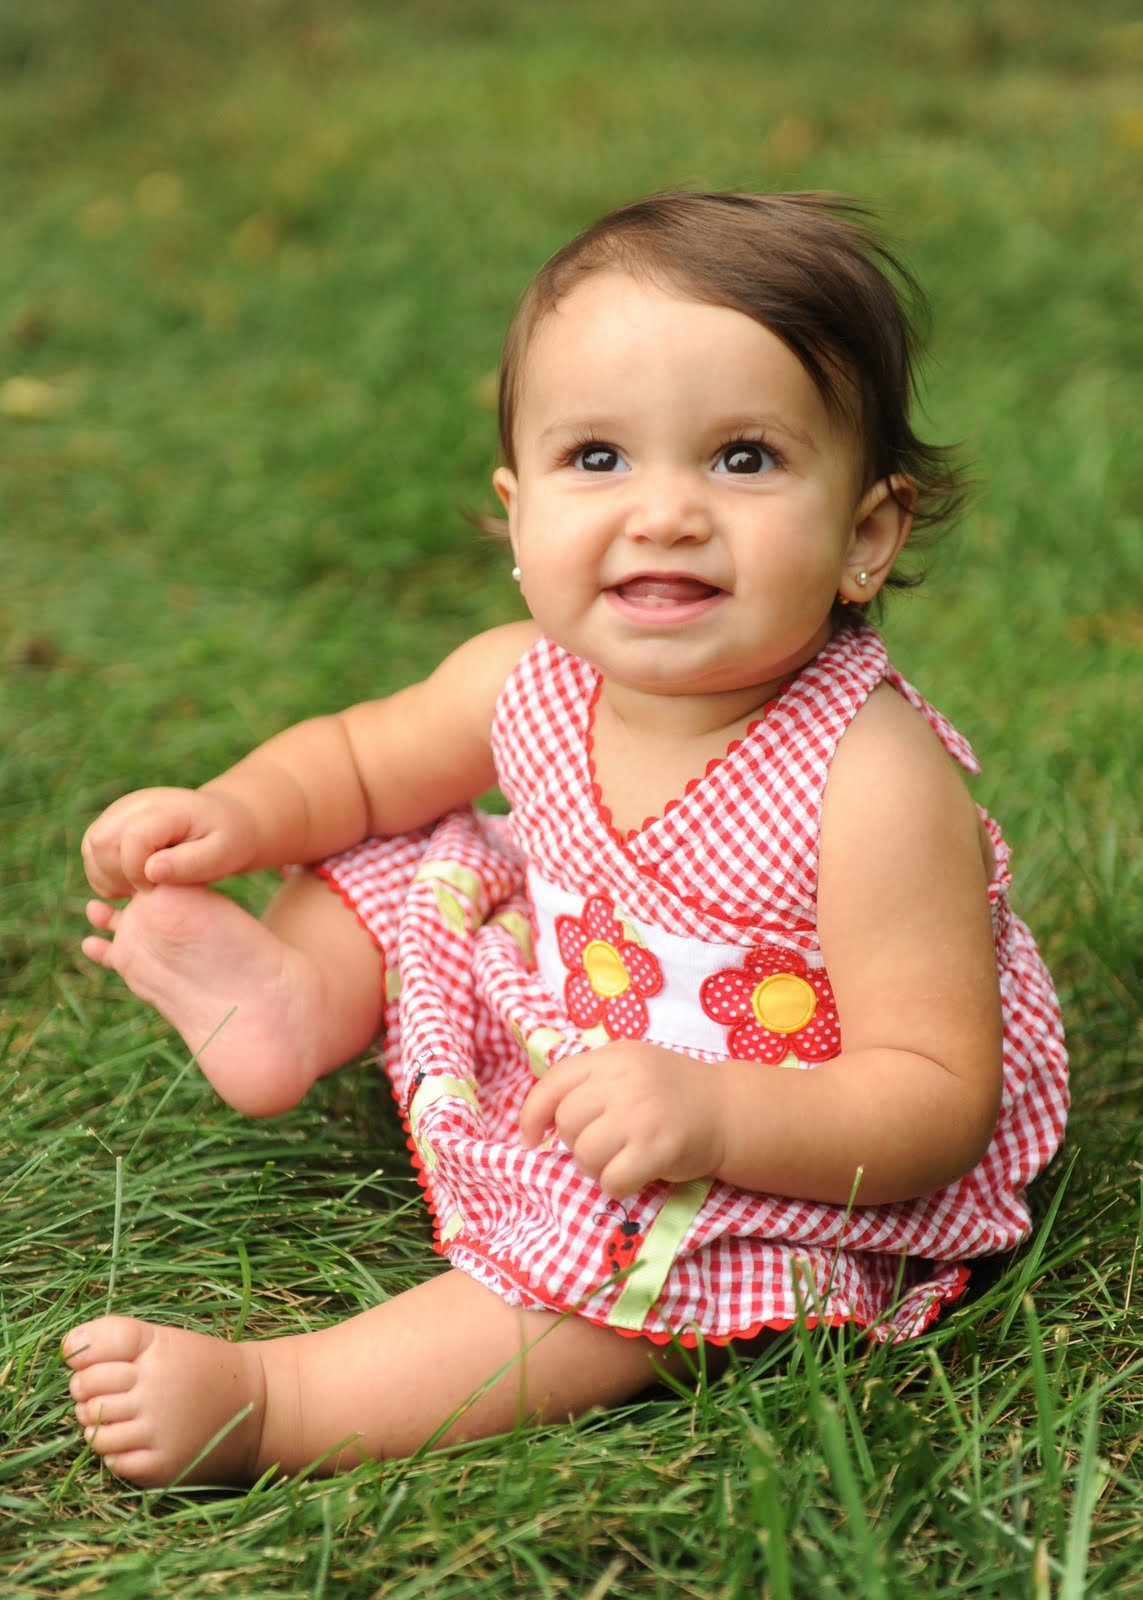 New Desiree Stover Photography One Year Old Baby Gianna Ideas With Pictures